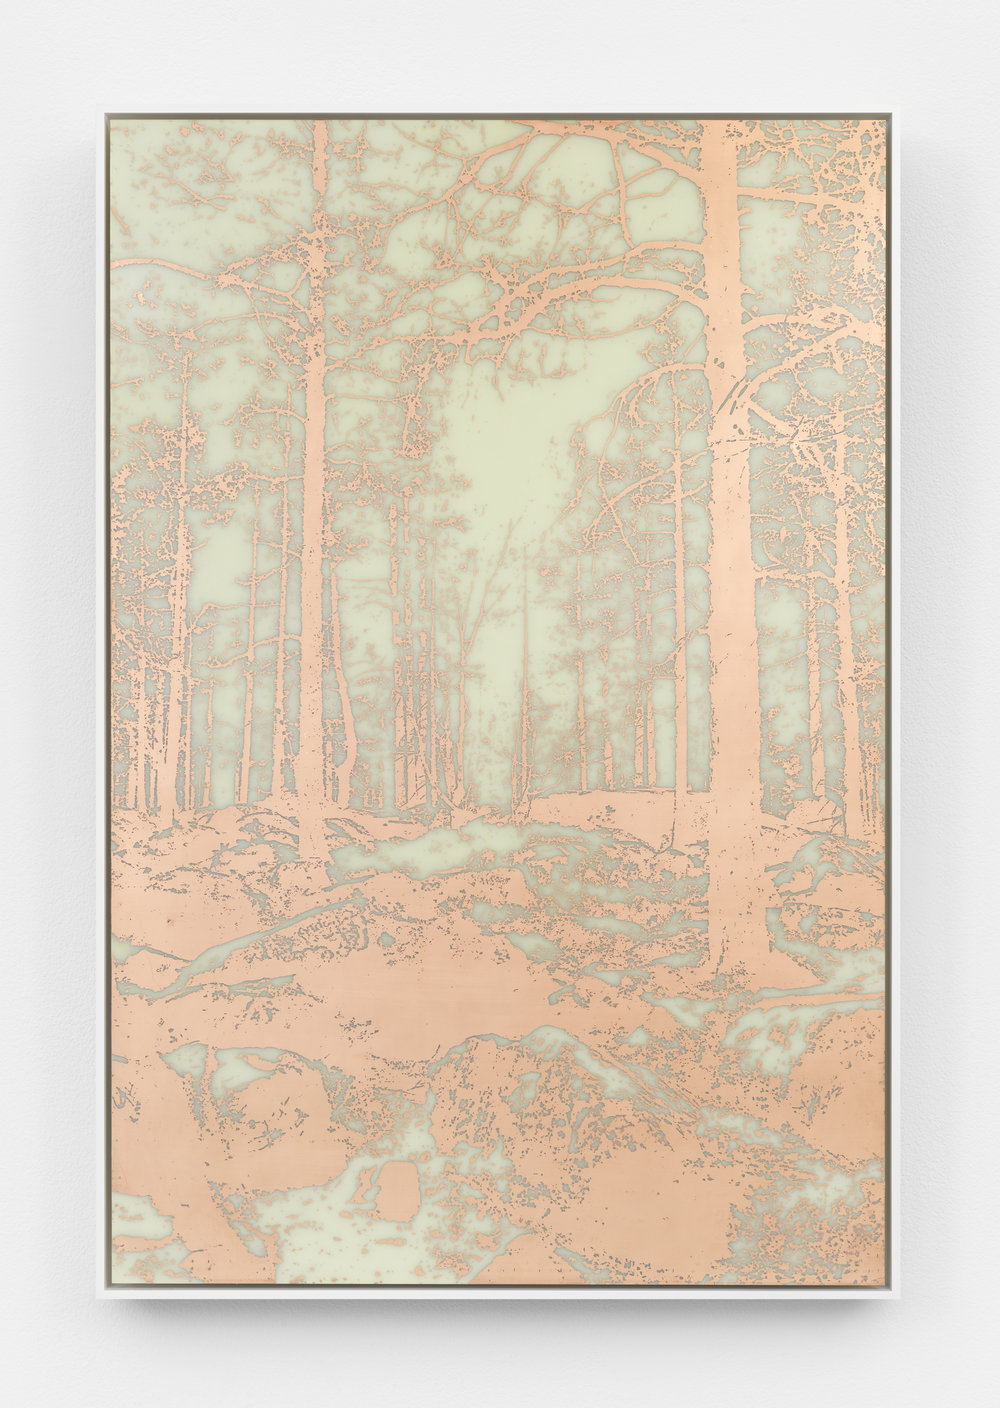 James Hoff Useless Landscape No. 27 2016 copper etching on fiberglass, aluminum, wood, lacquer Courtesy of the artist and Callicoon Fine Arts, NY.